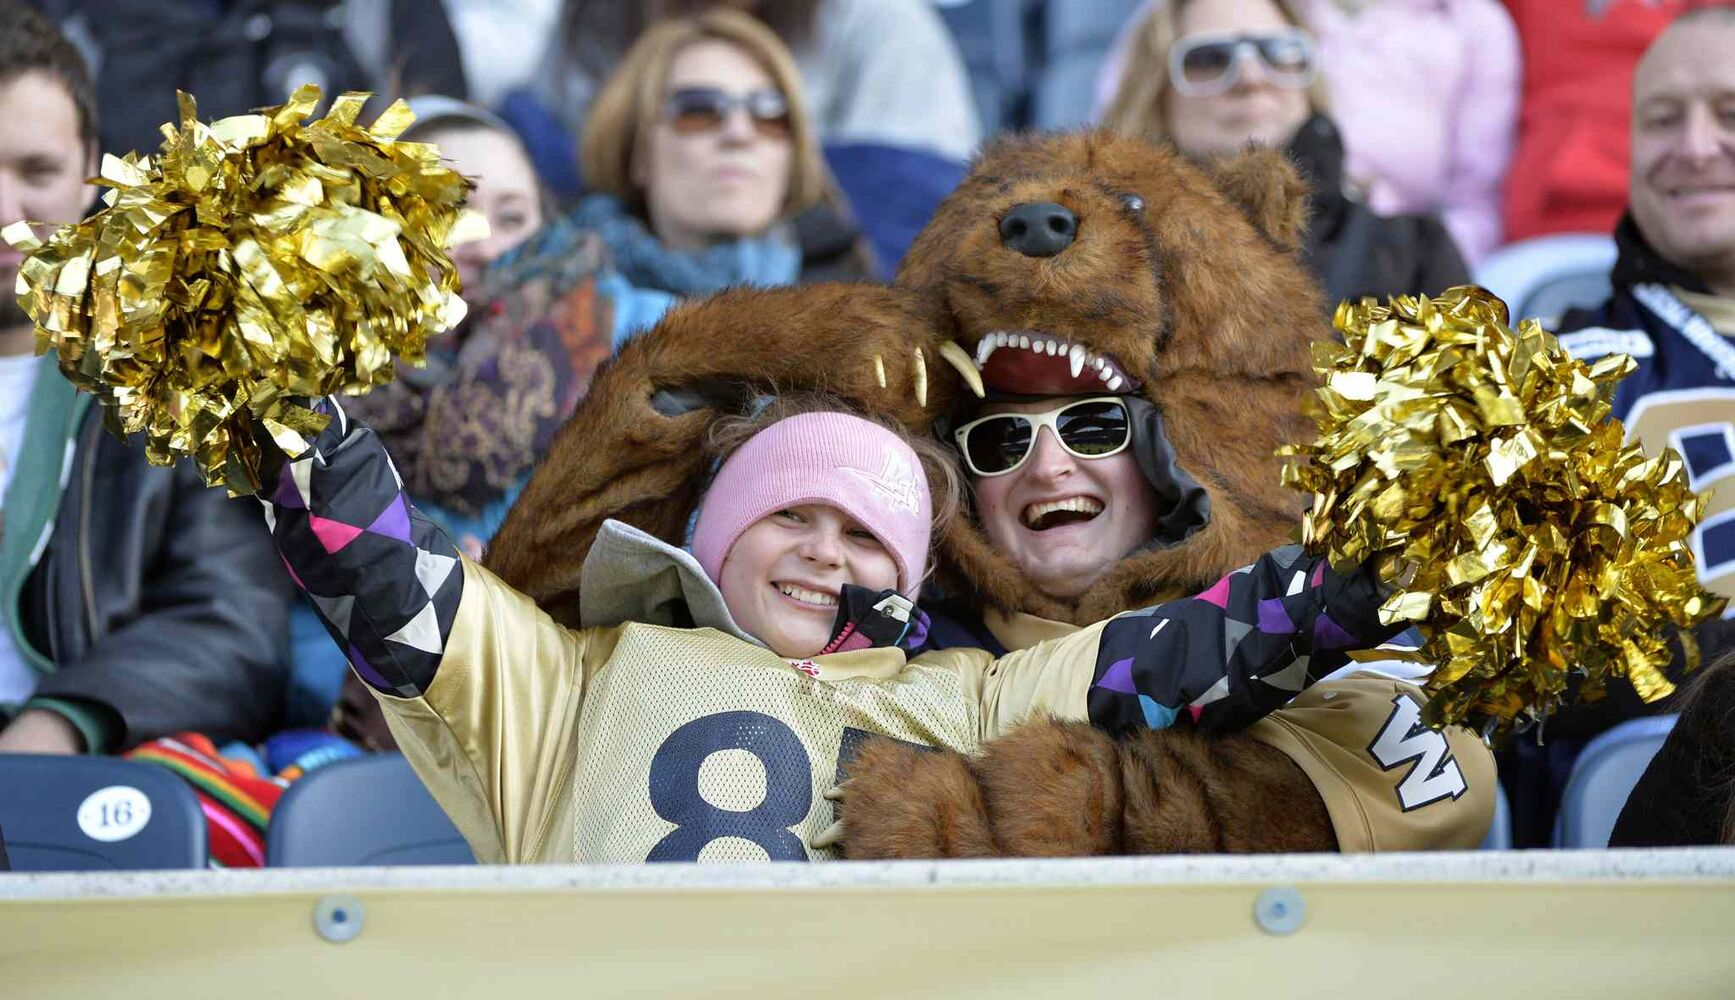 Winnipeg football fans watch the game between the Winnipeg Blue Bombers and Hamilton Tiger-Cats during the second half of CFL action in Winnipeg Saturday, November 2, 2013. THE CANADIAN PRESS/Fred Greenslade